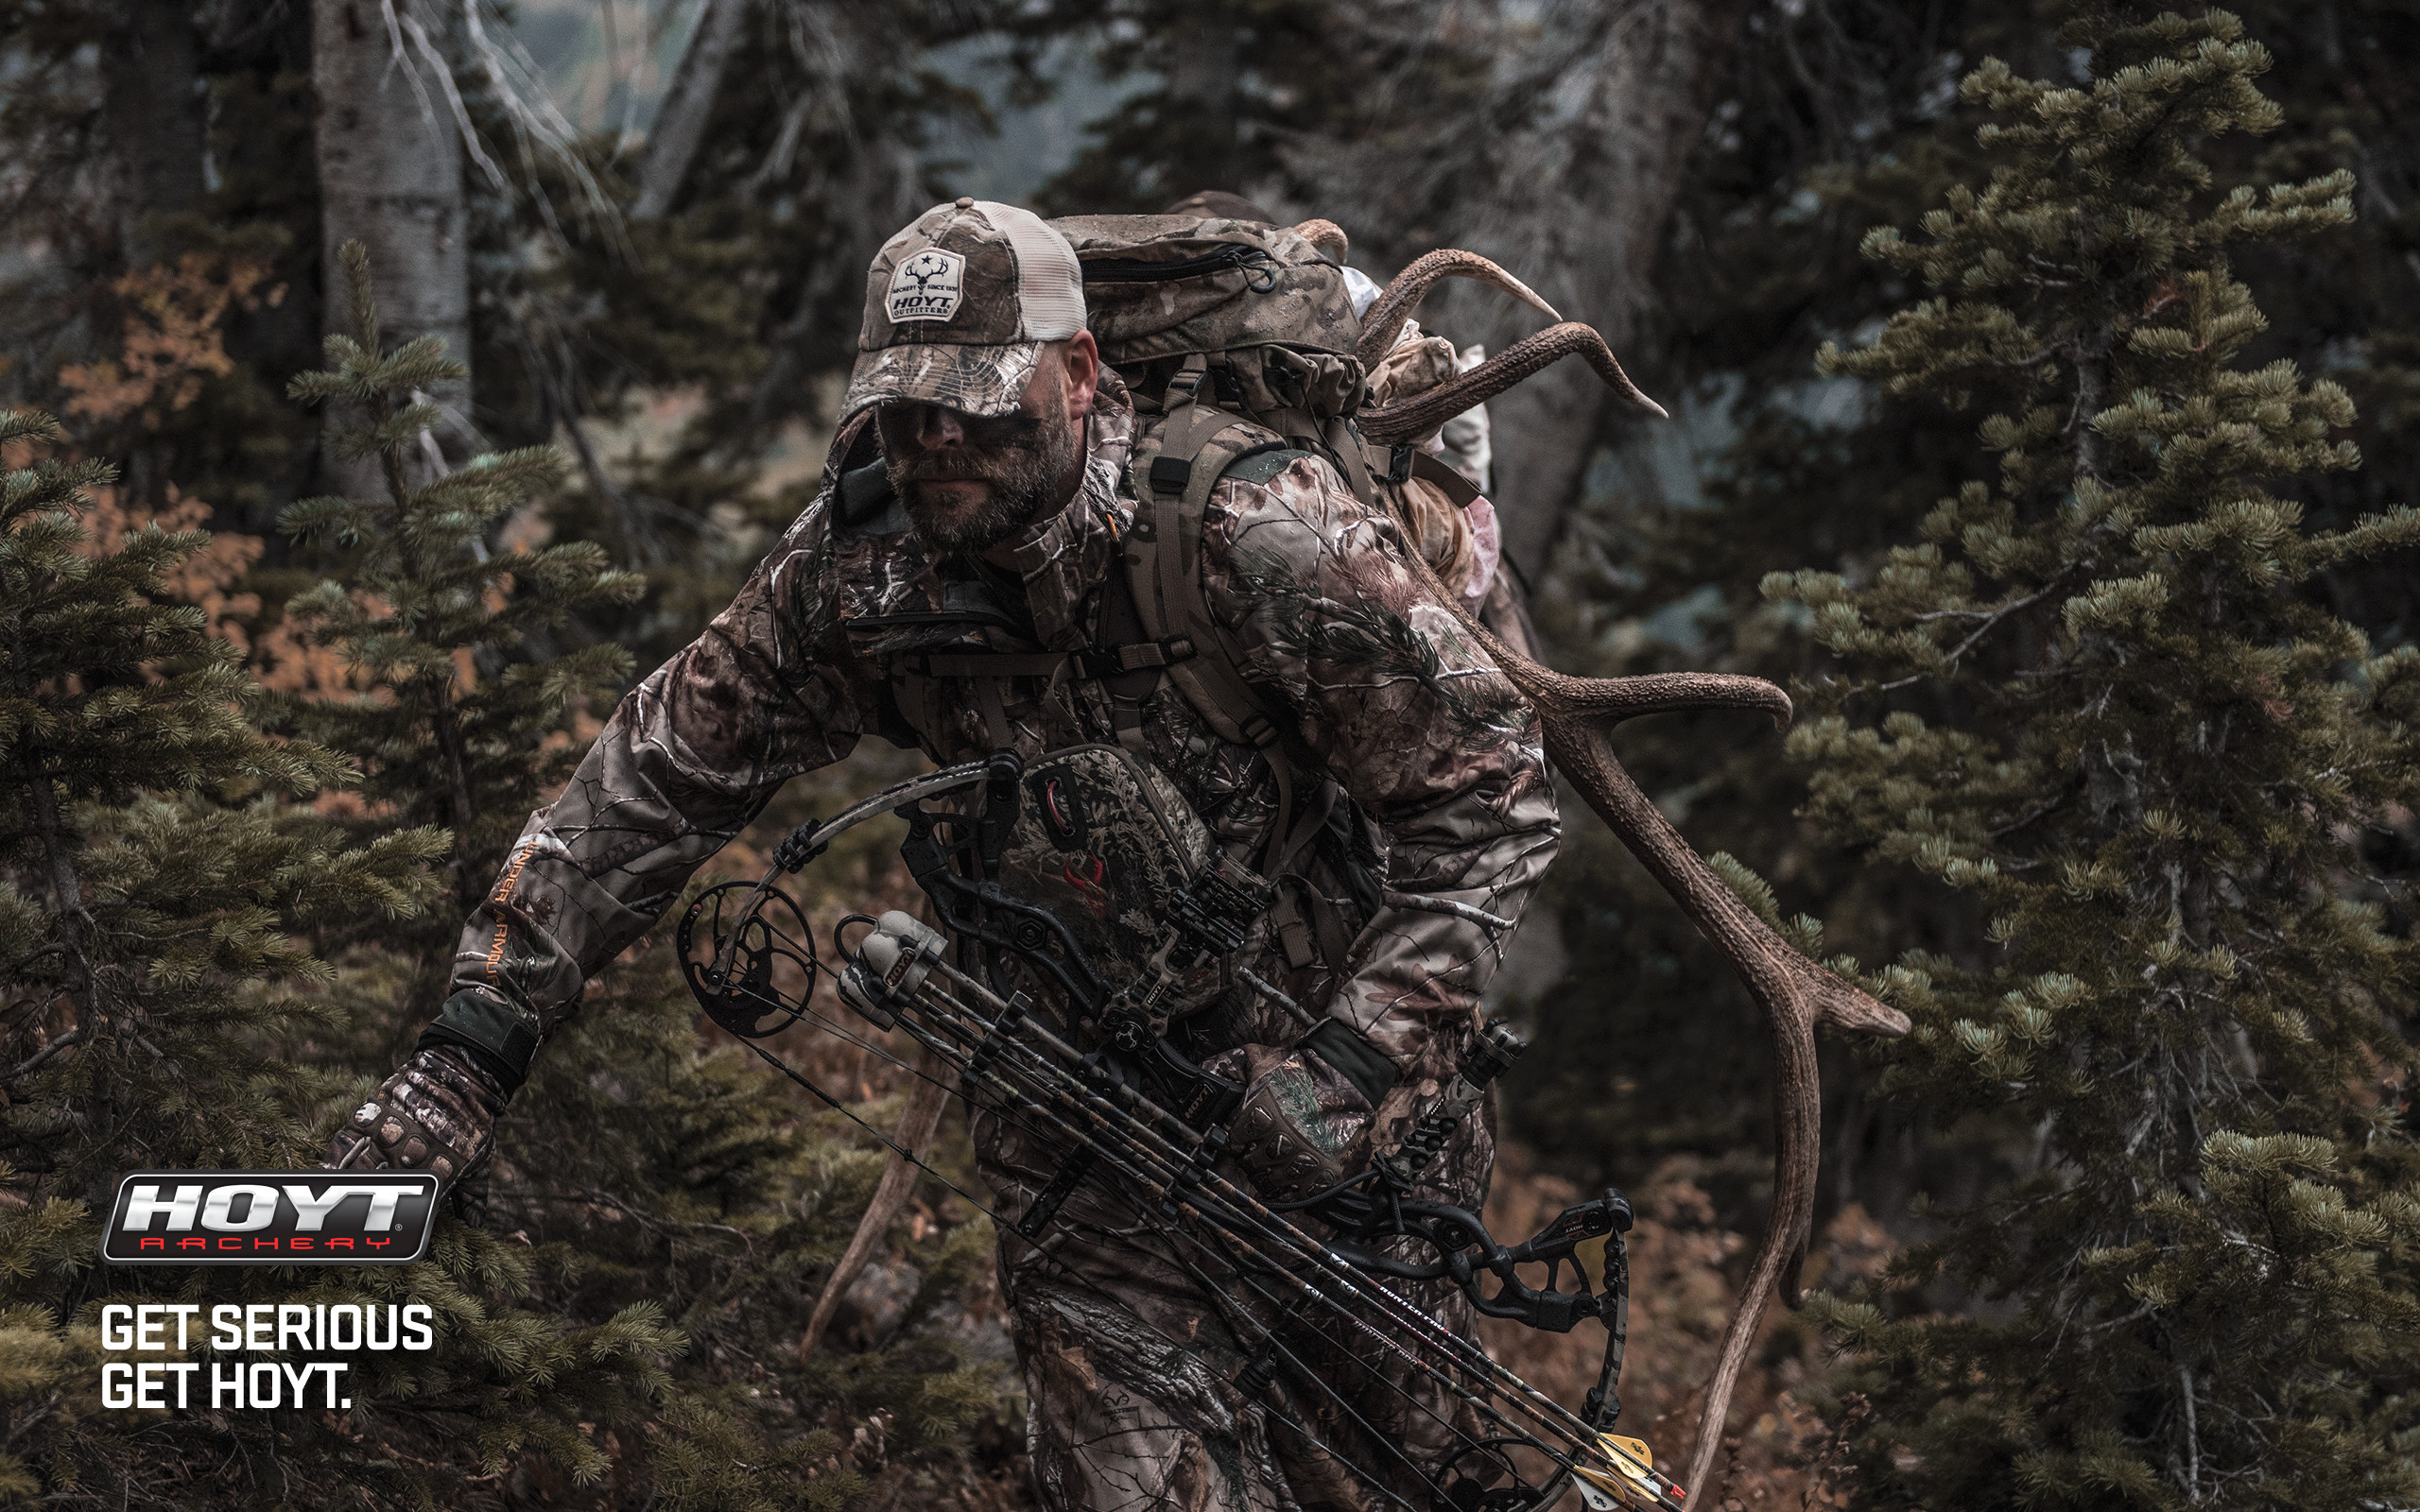 bow hunting background wallpaper (57 images)2560x1600 bowhunting wallpaper desktop, pc bowhunting incredible